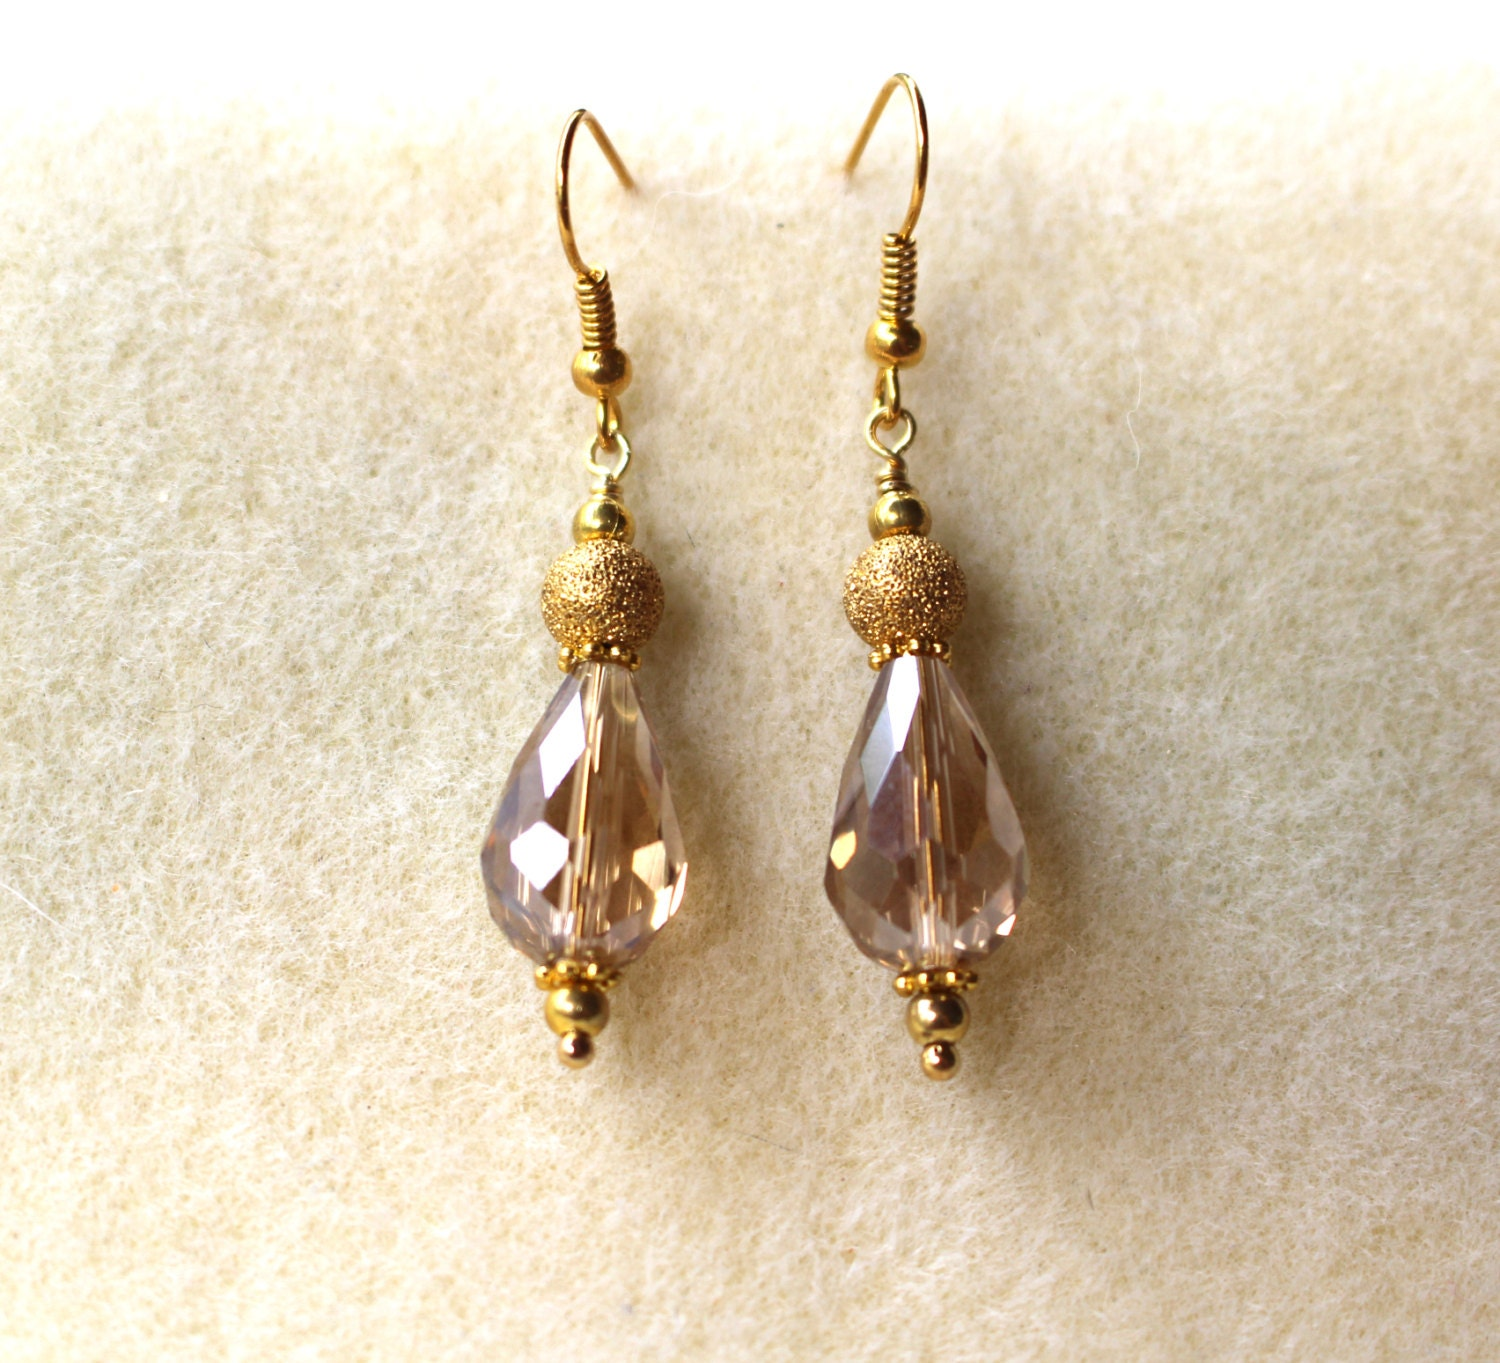 Topaz Teardrop Crystal Swarovski Earrings,Light Topaz Drop